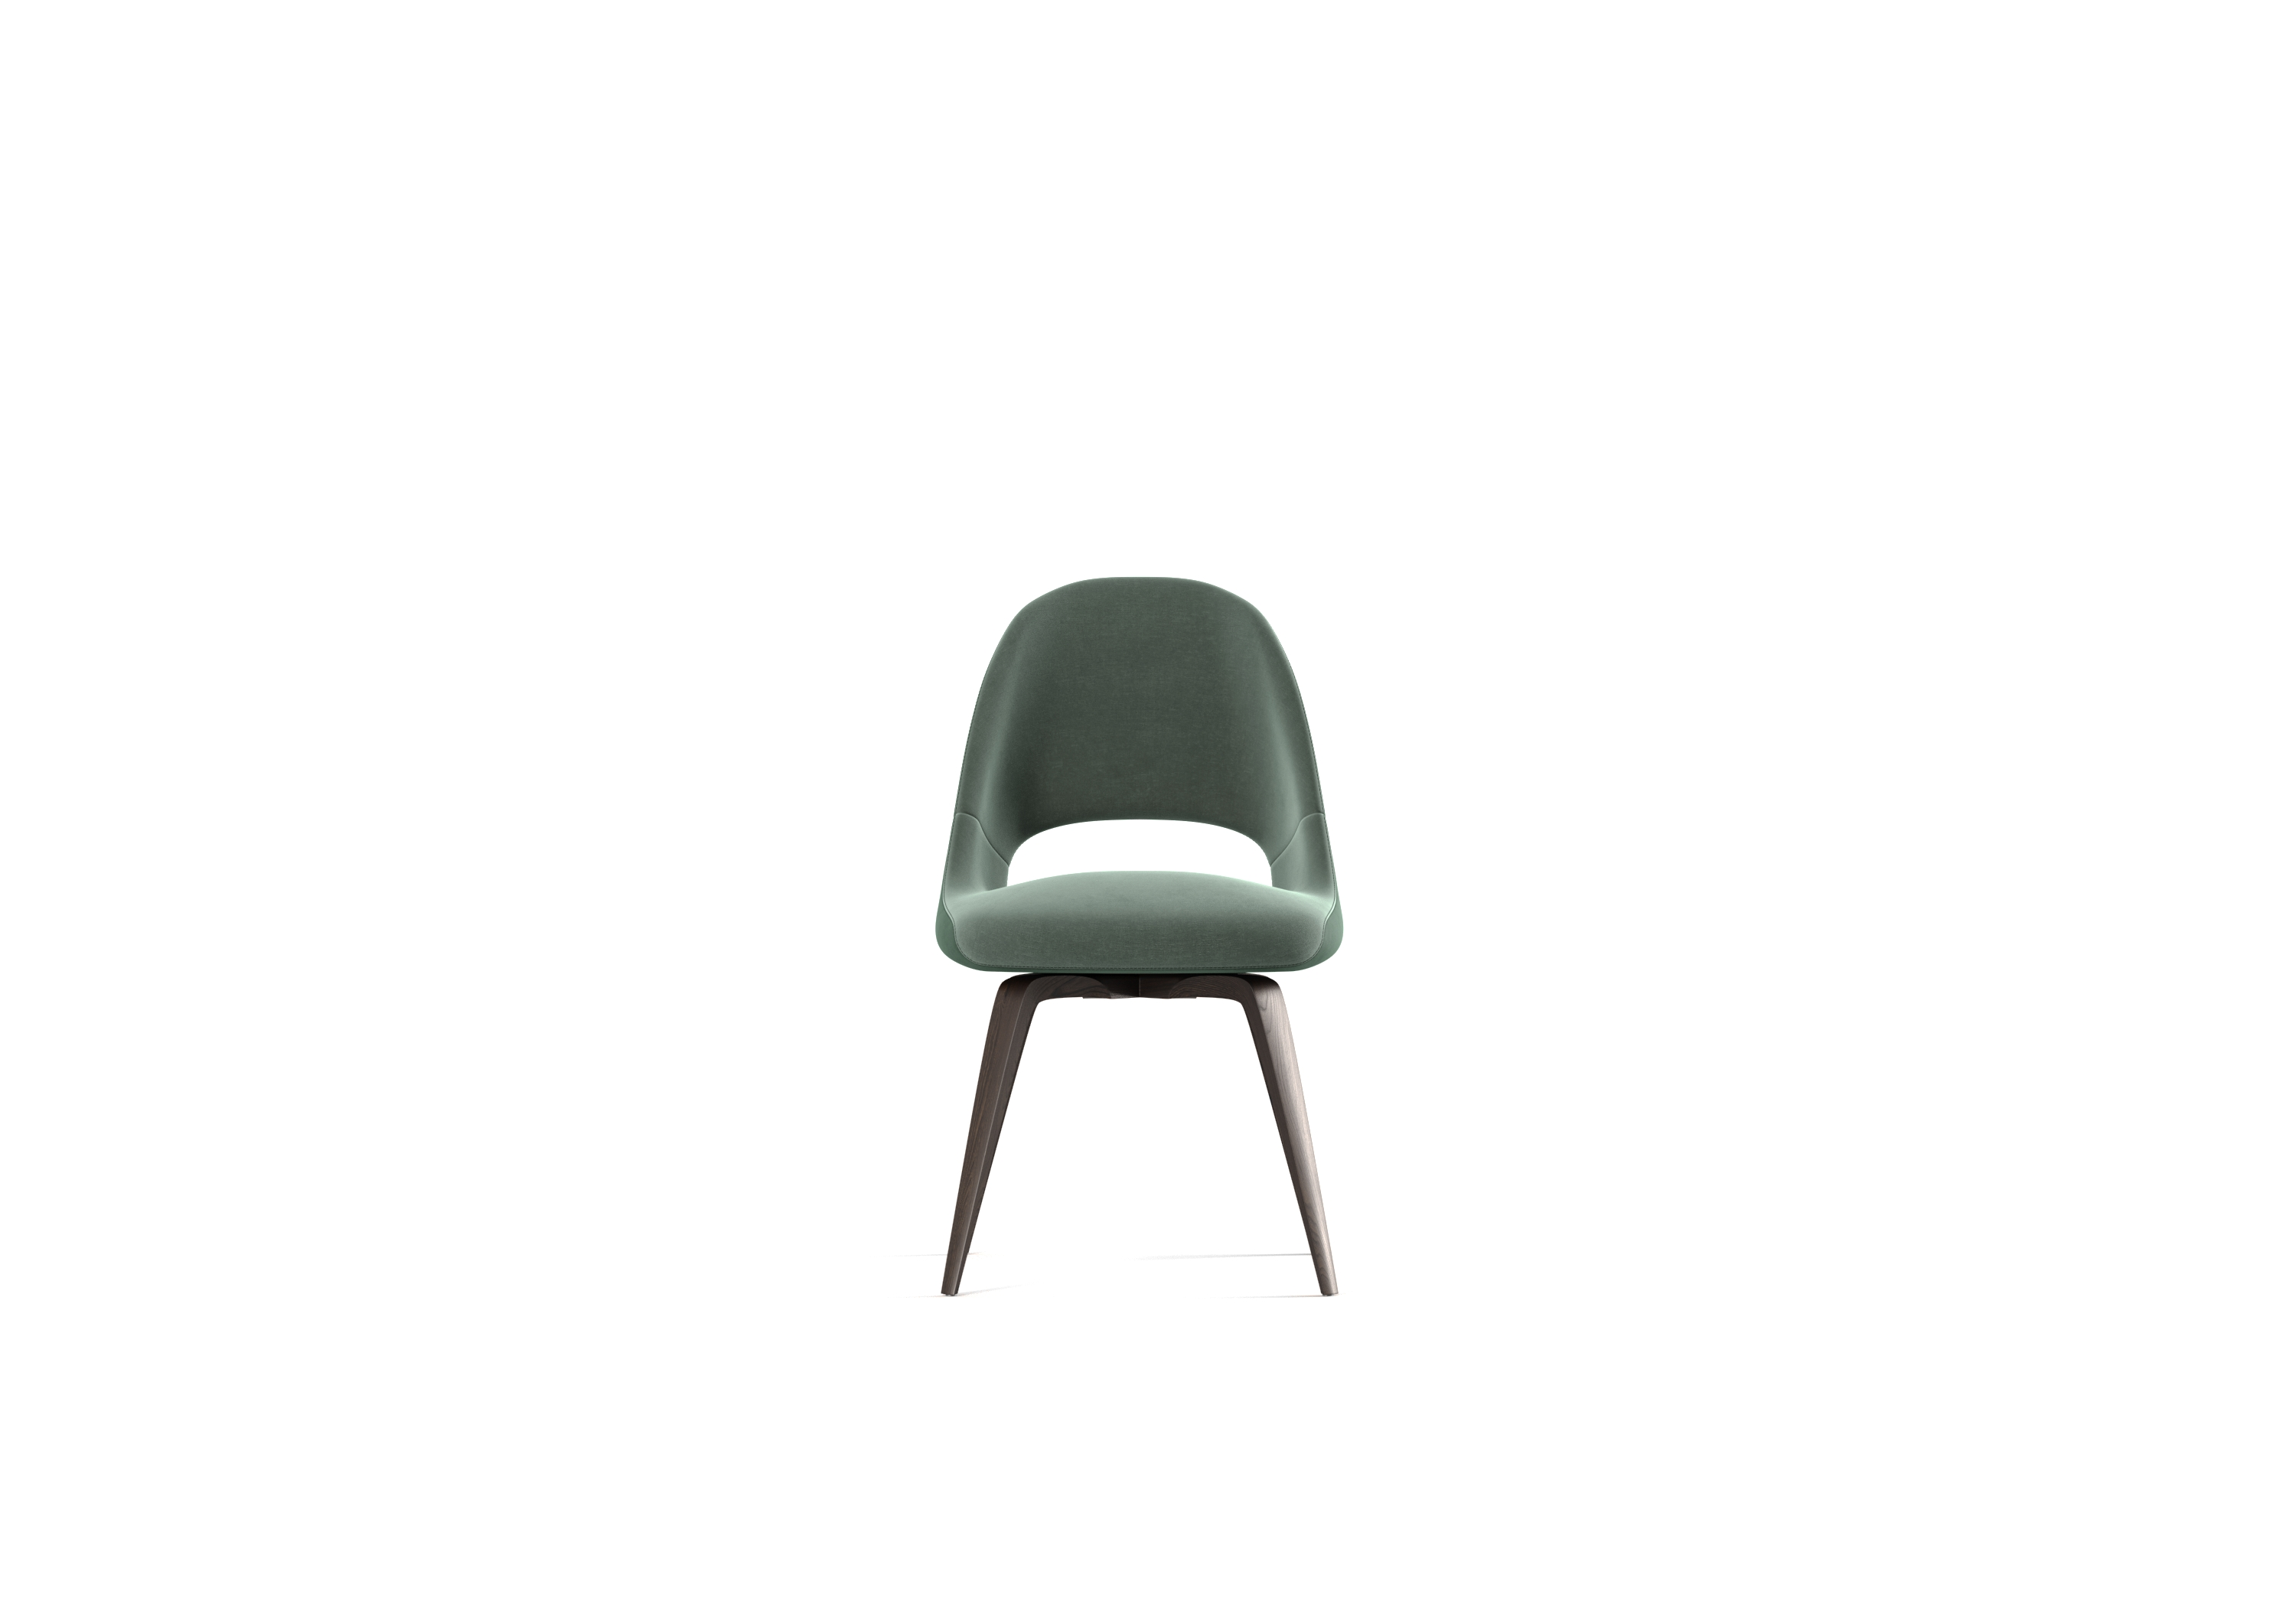 Chair without arms 01 (2) W45 x L54 x H81